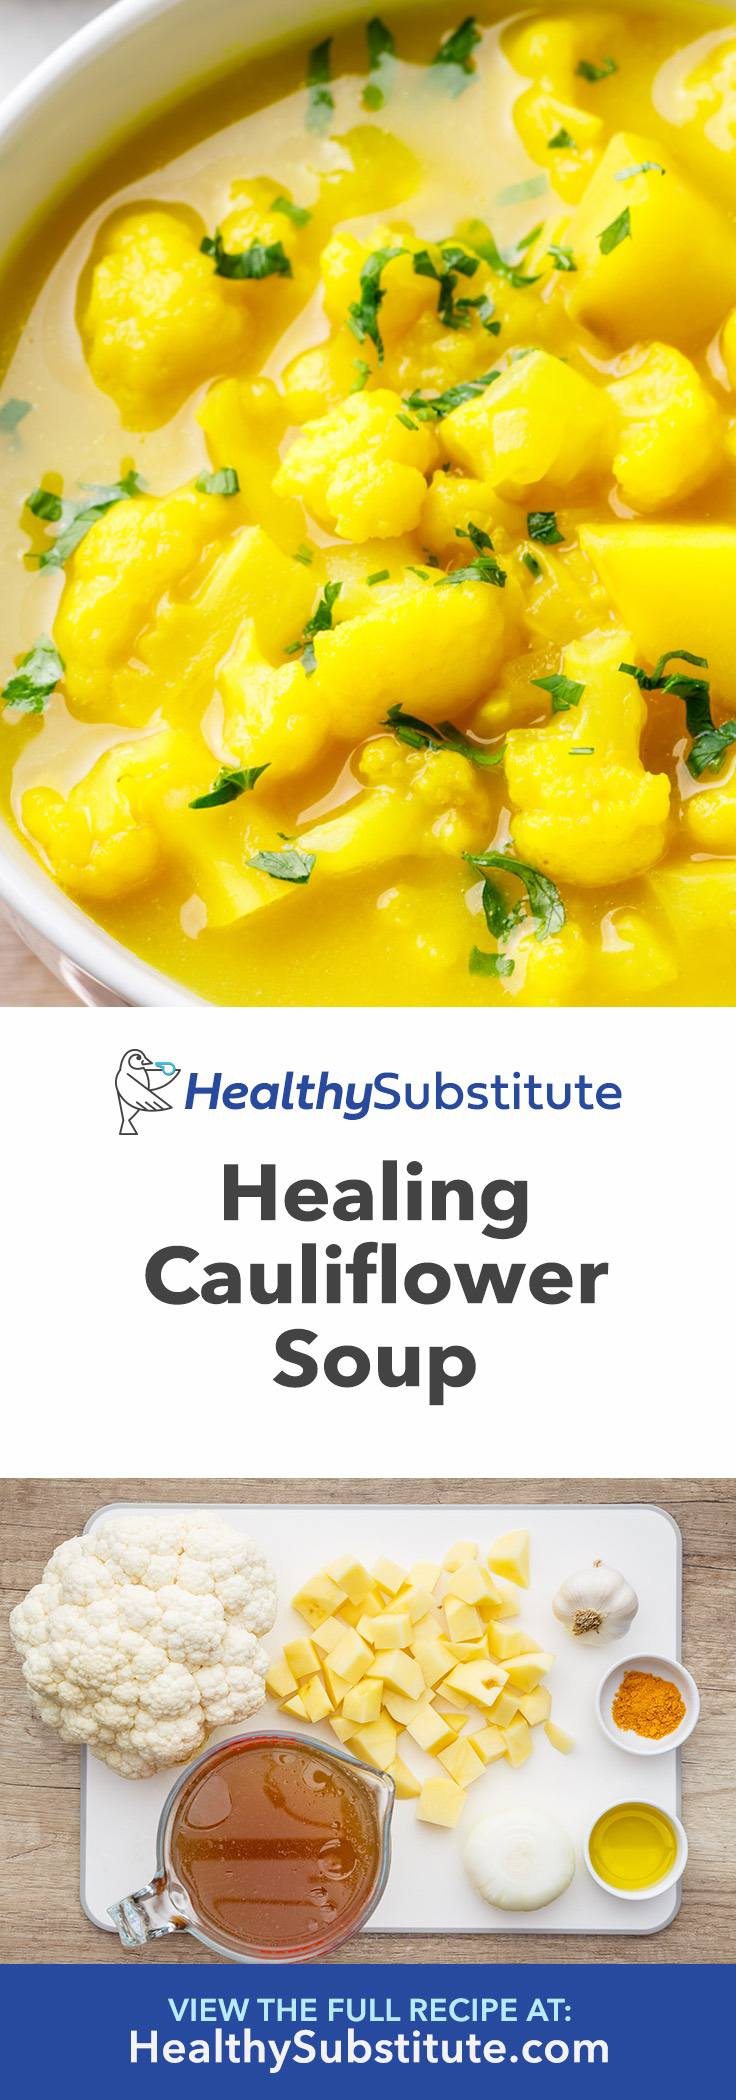 Healing Cauliflower Soup to Get Rid of a Cold